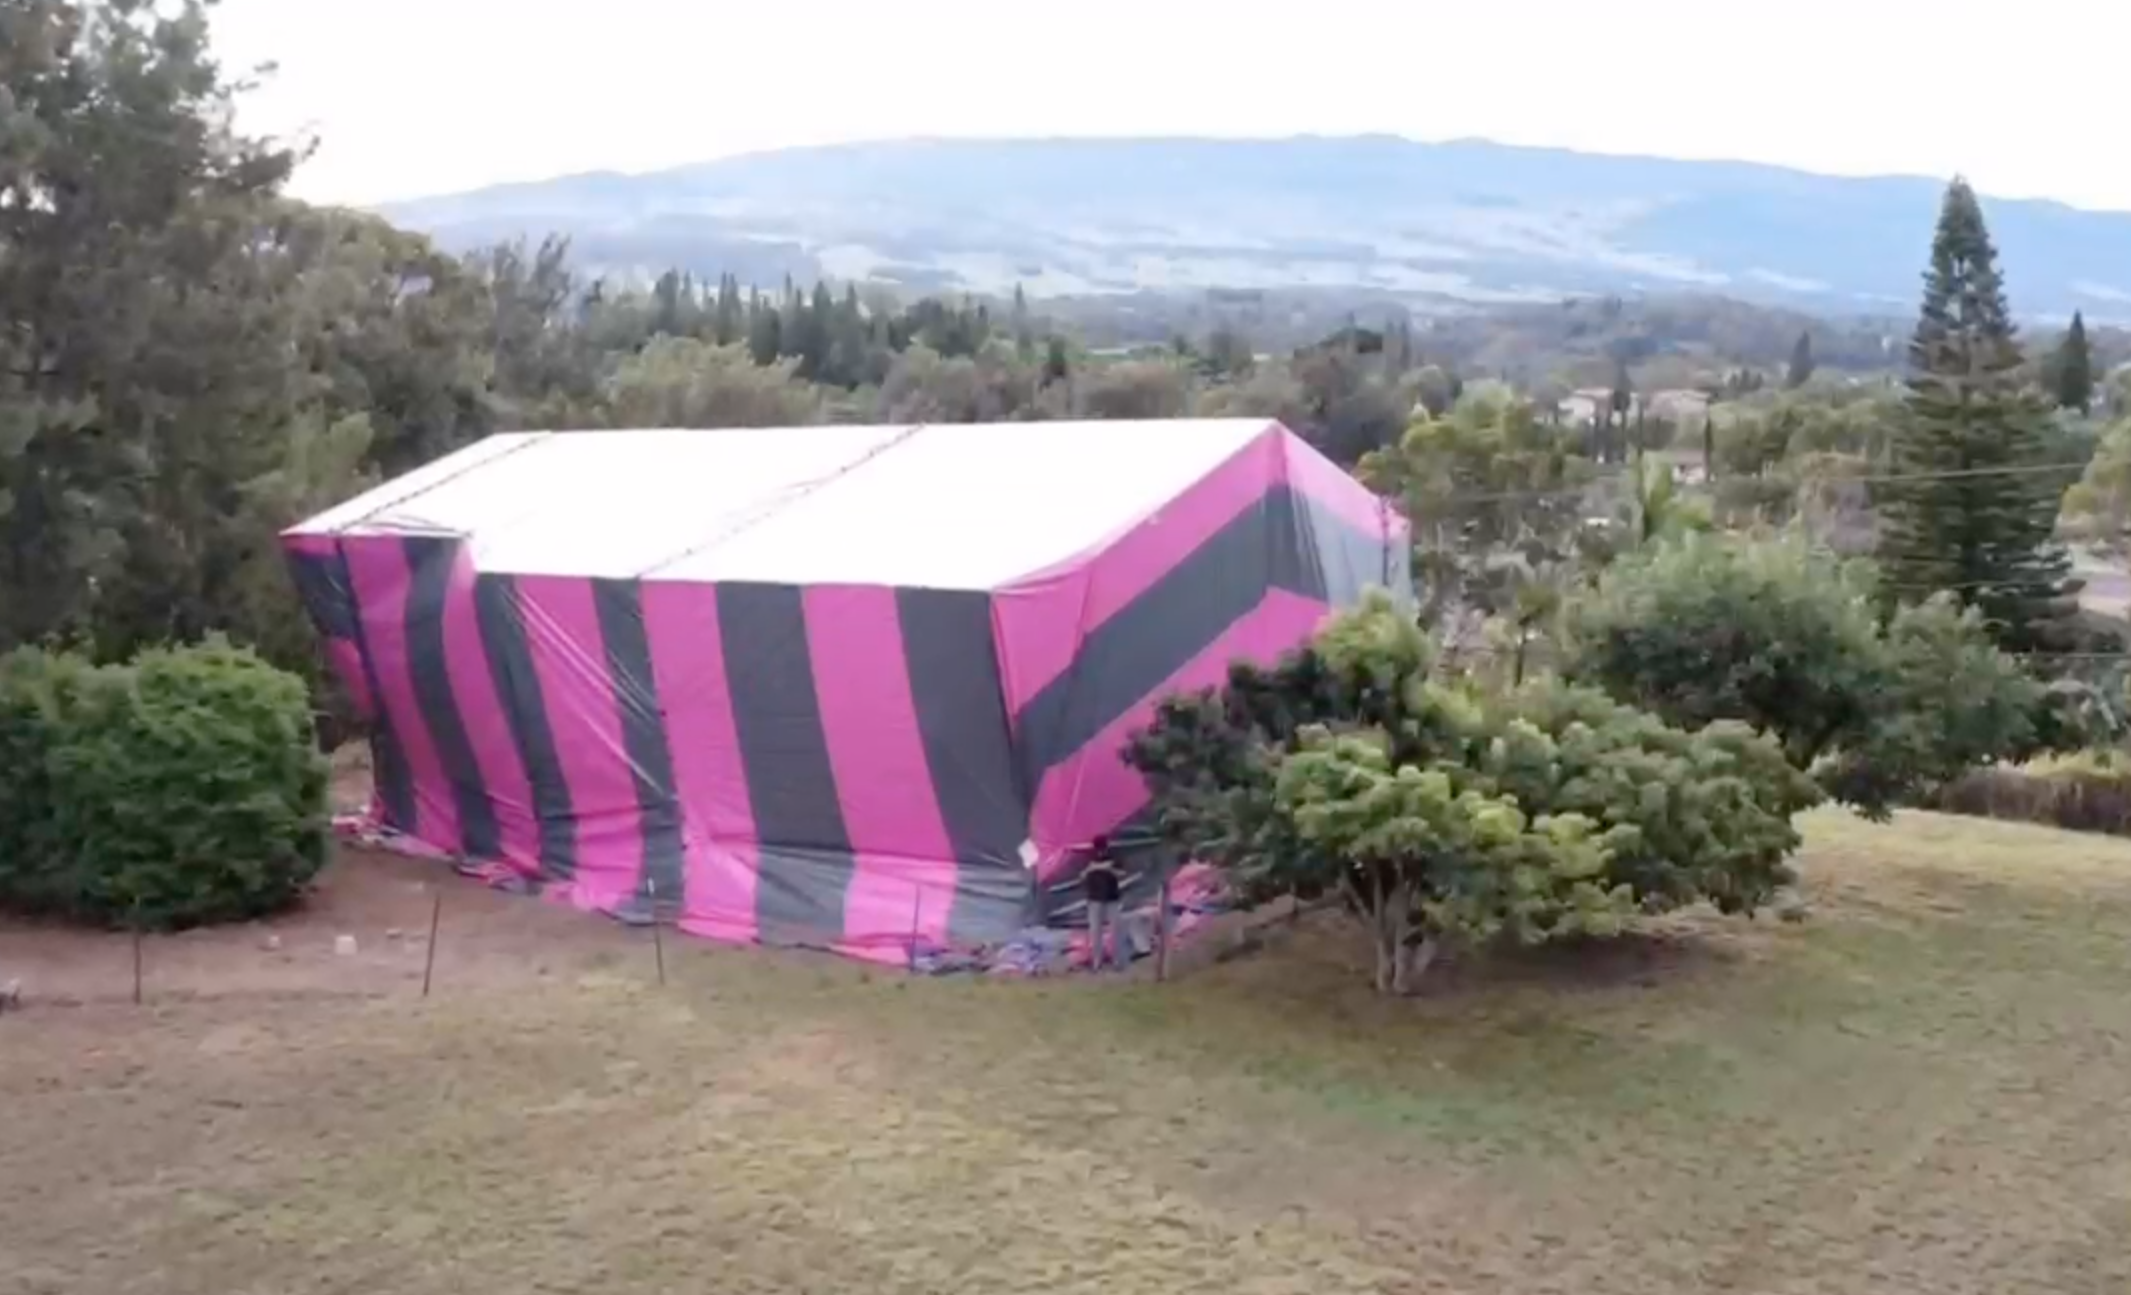 Maui Termite Company Supports Breast Cancer Awareness with Pink Fumigation Tents